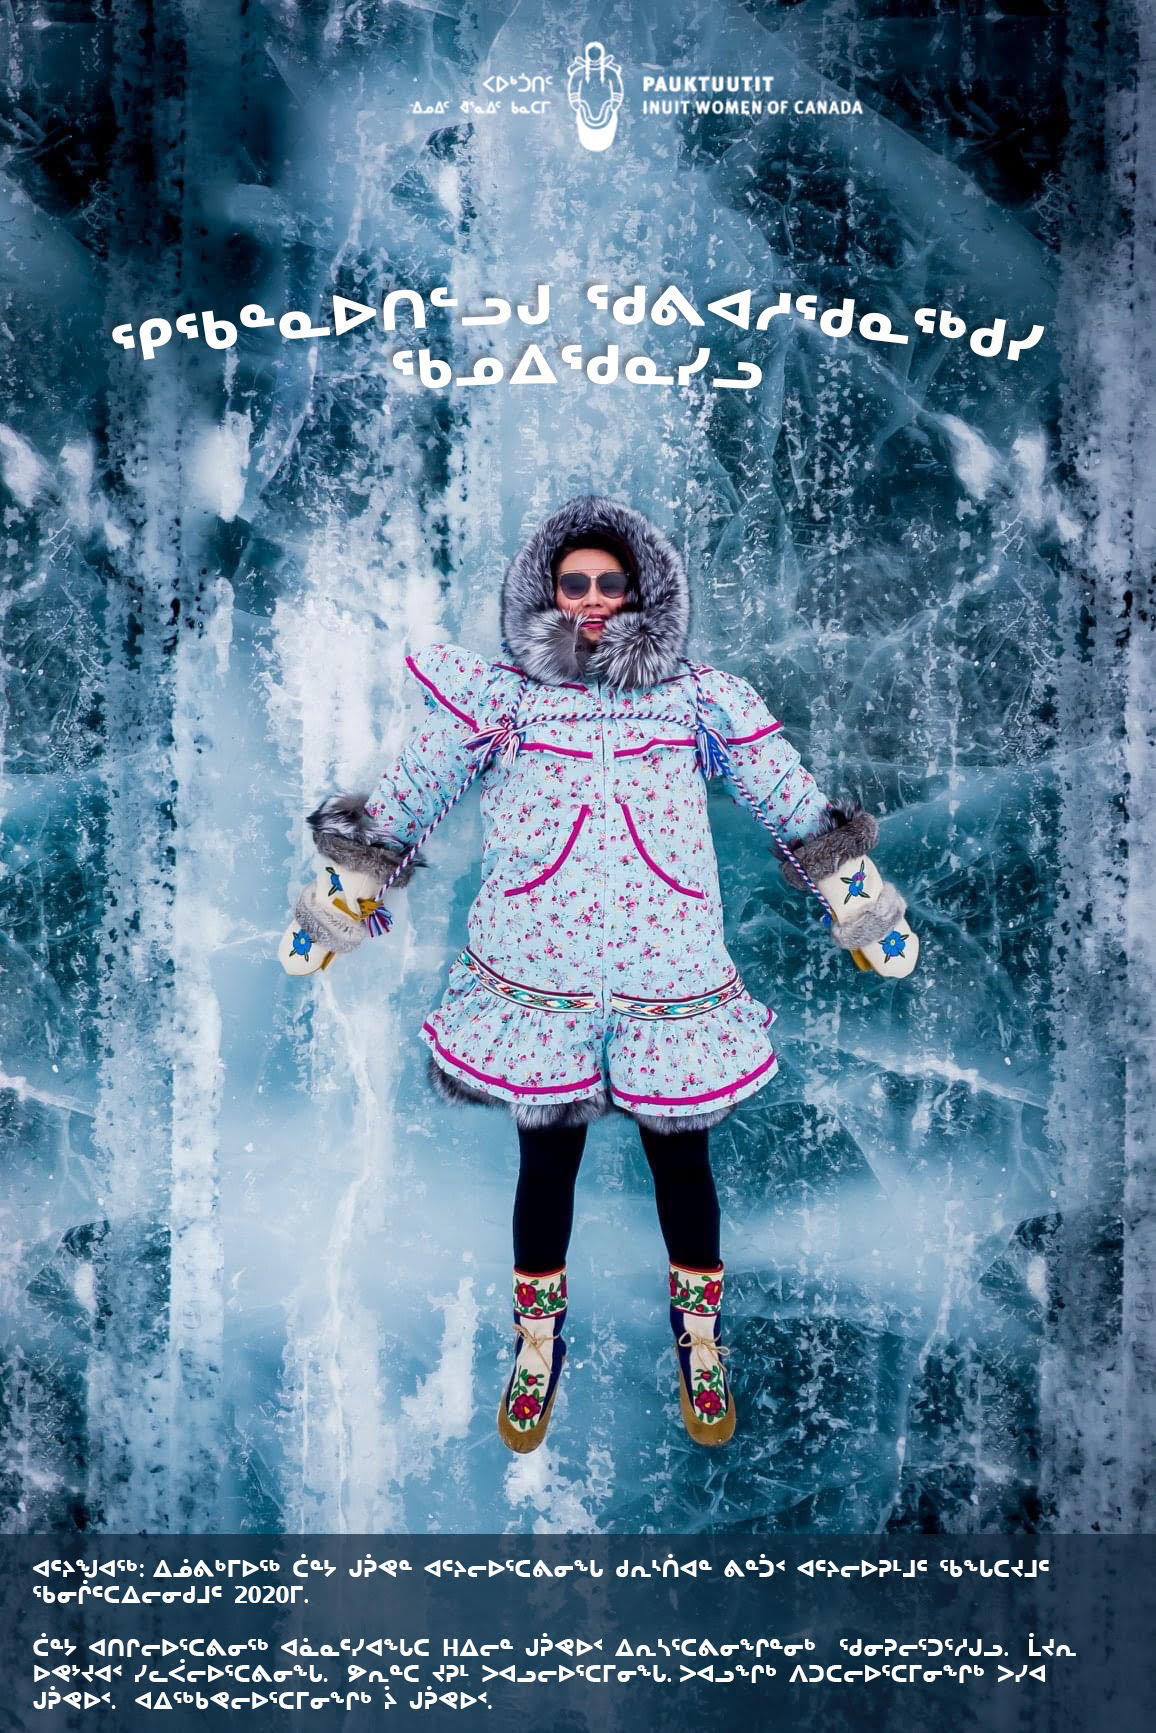 Pauktuutit Inuit Women of Canada produced this holiday card with the help of Inuk photographer Kristian Binder, who took the image with a drone to respect social distancing. It's of Tanya Gruben of Inuvik, who is seen lying on an ice road. (Image courtesy of Pauktuutit)